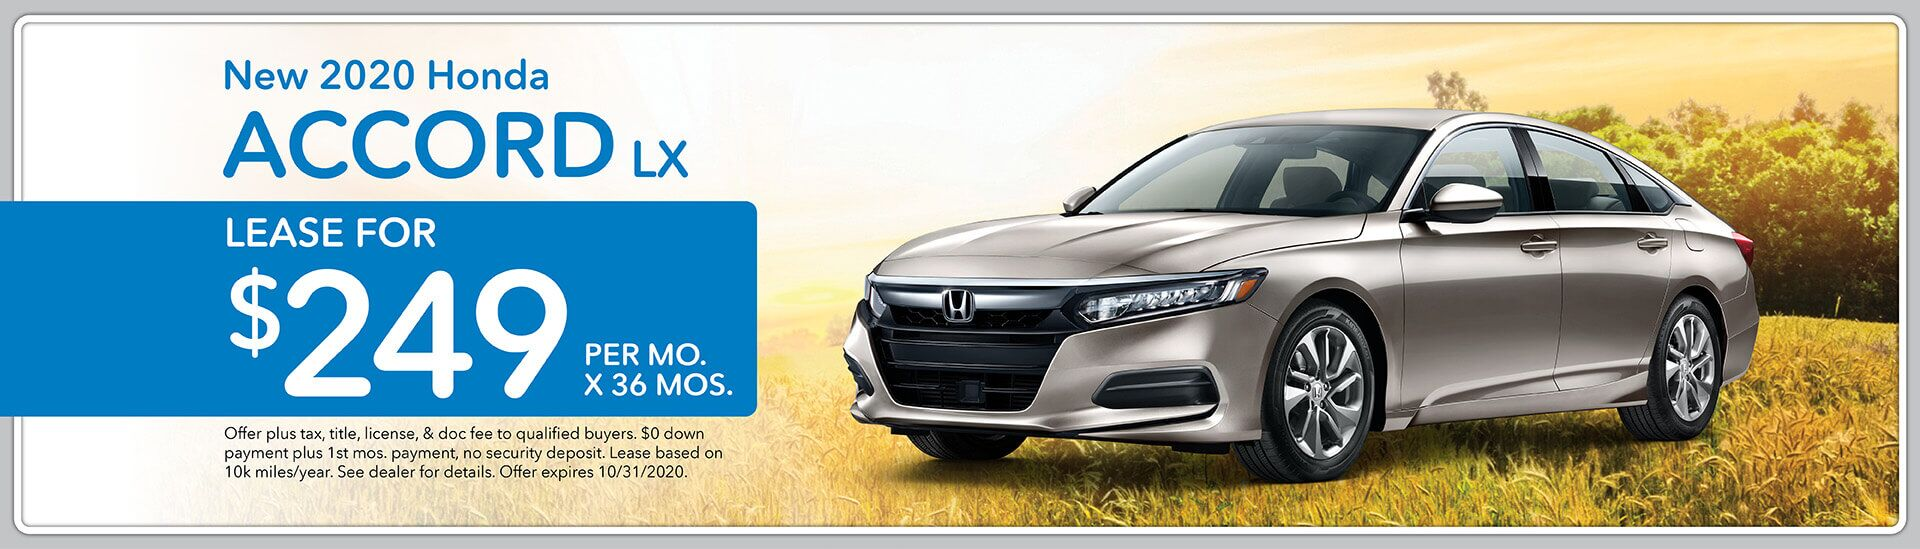 2020 Honda Accord LX, Lease for $249/mo. for 36 mos.   Green Bay, WI